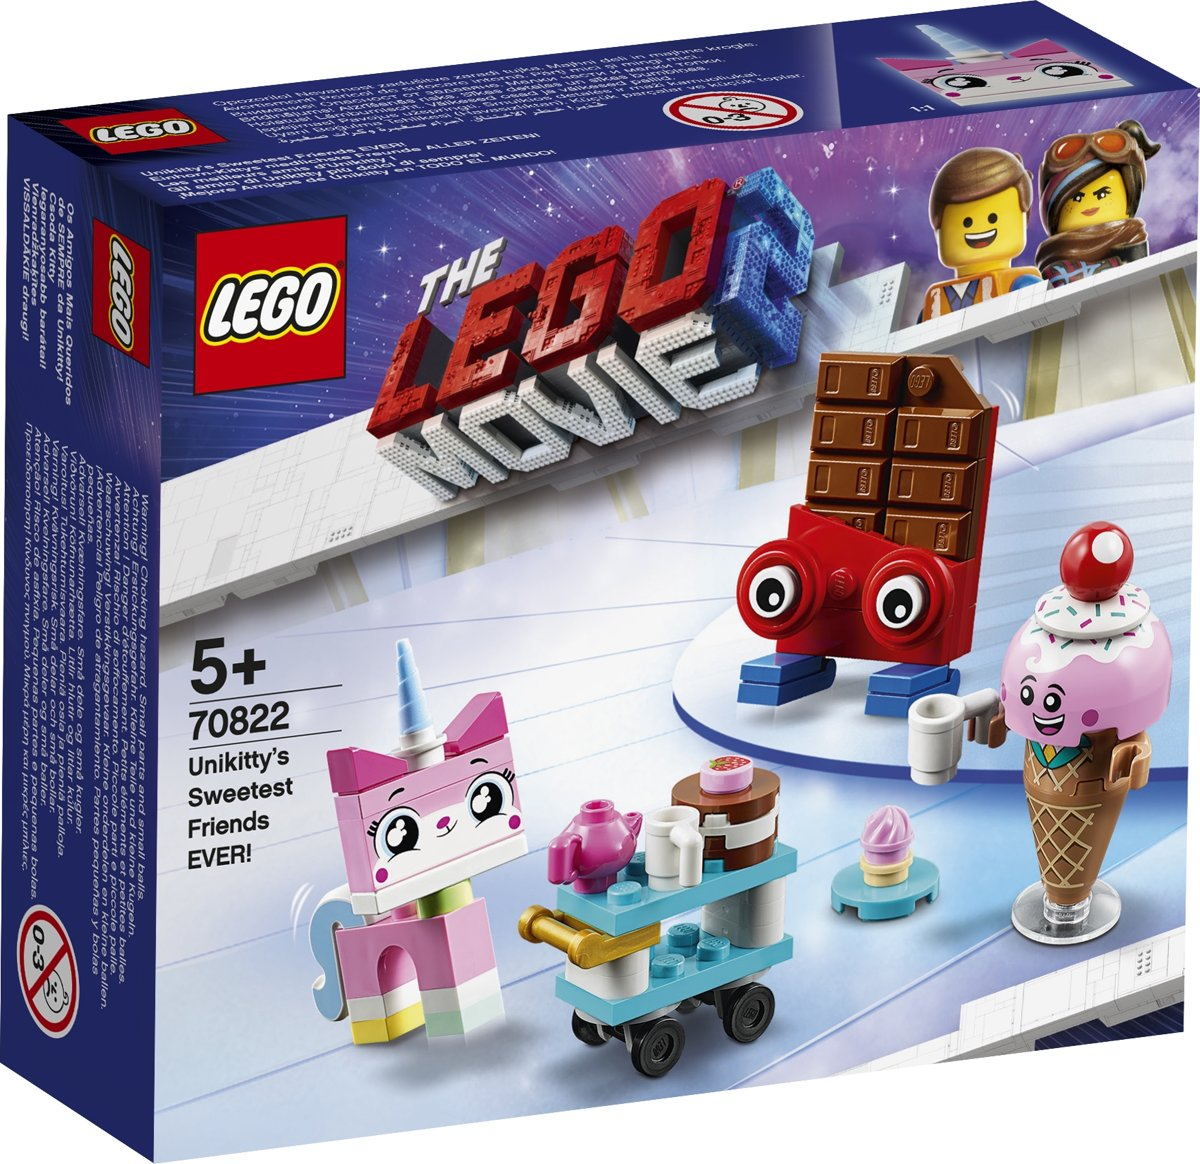 LEGO The Movie 2 De Allerliefste Vrienden van Unikitty! - 70822